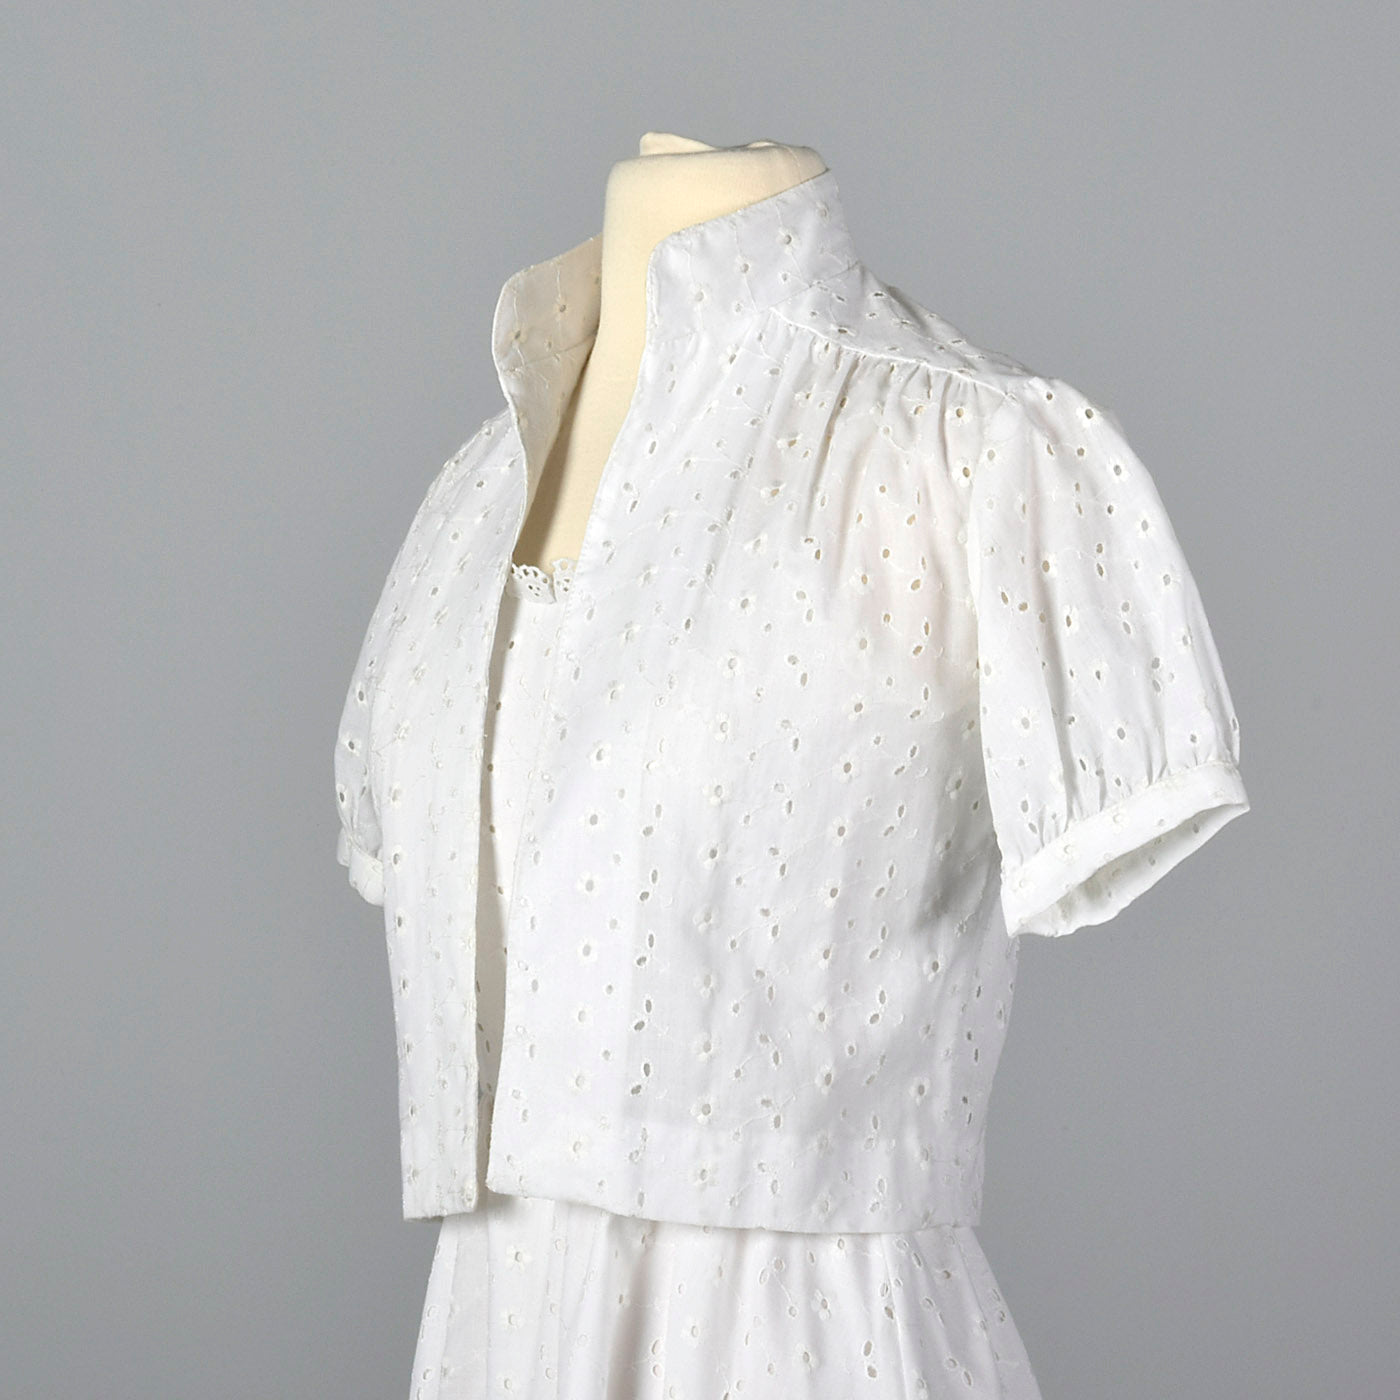 1960s Lanz White Eyelet Dress with Jacket